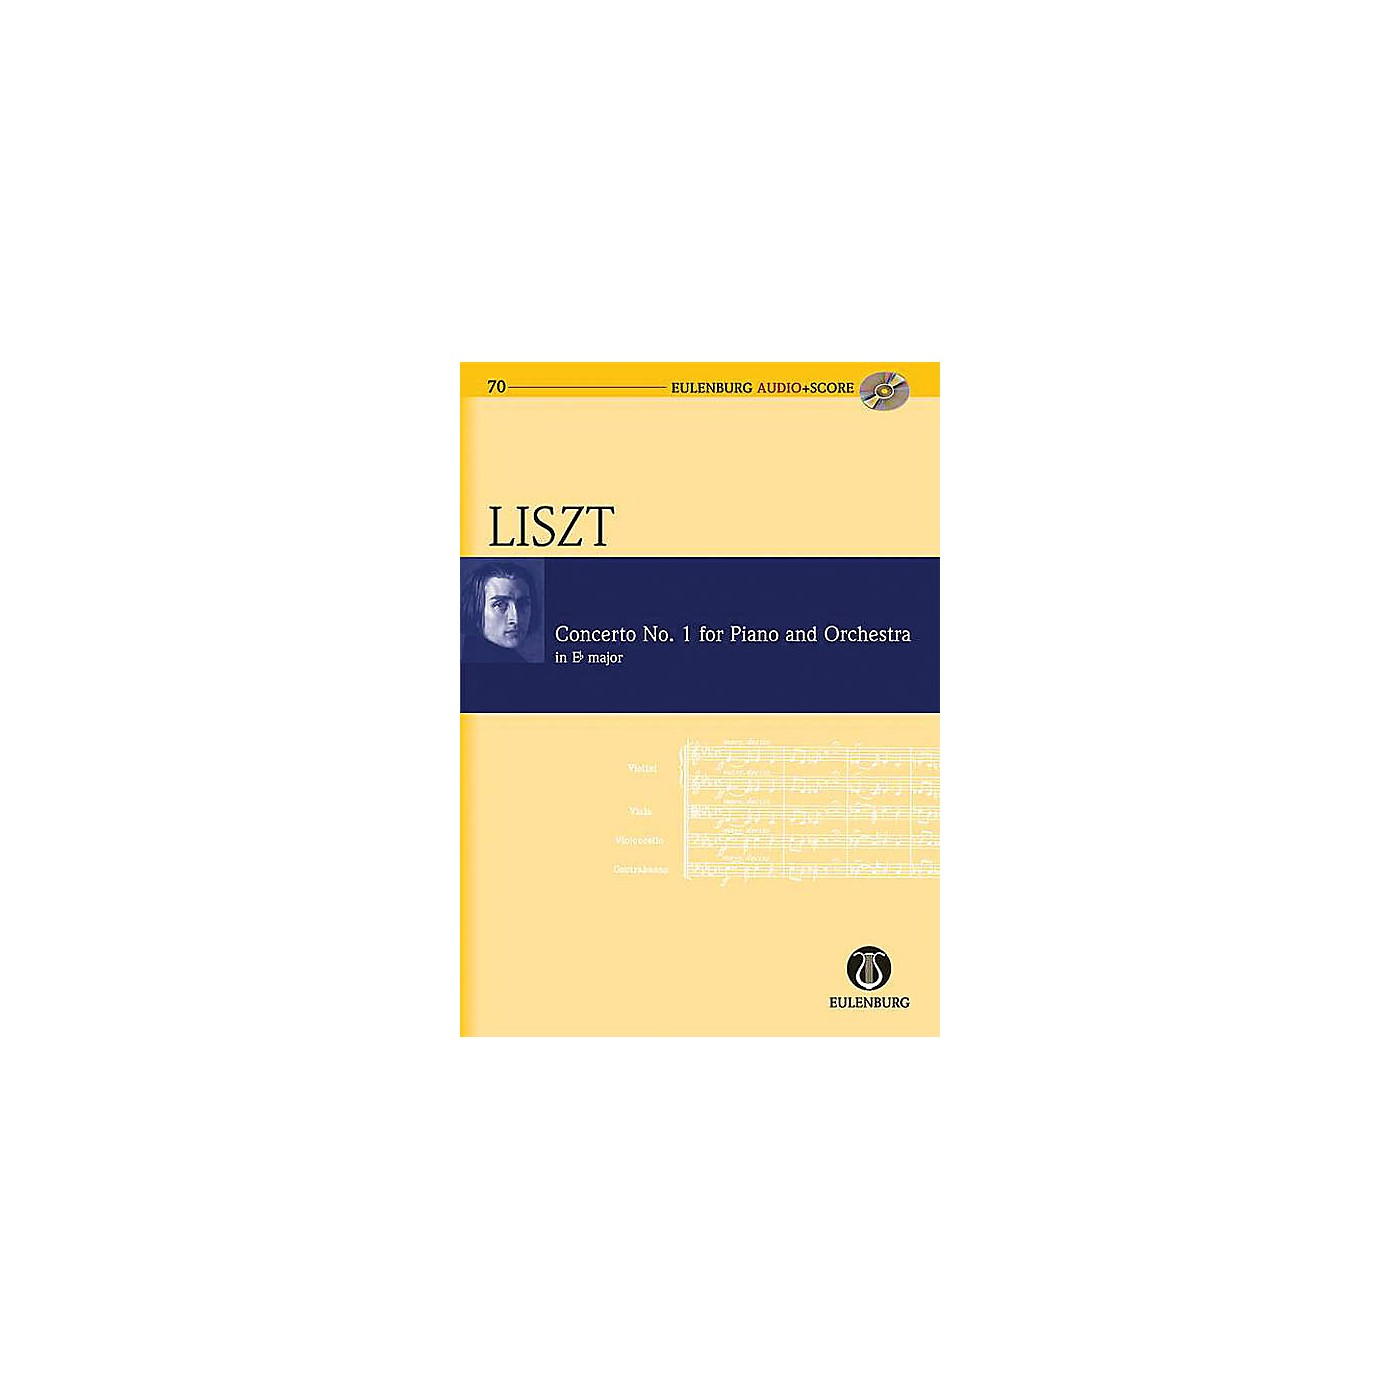 Eulenburg Conc No. 1 for Piano and Orchestra in E-flat Major Eulenberg Audio plus Score w/ CD by Franz Liszt thumbnail